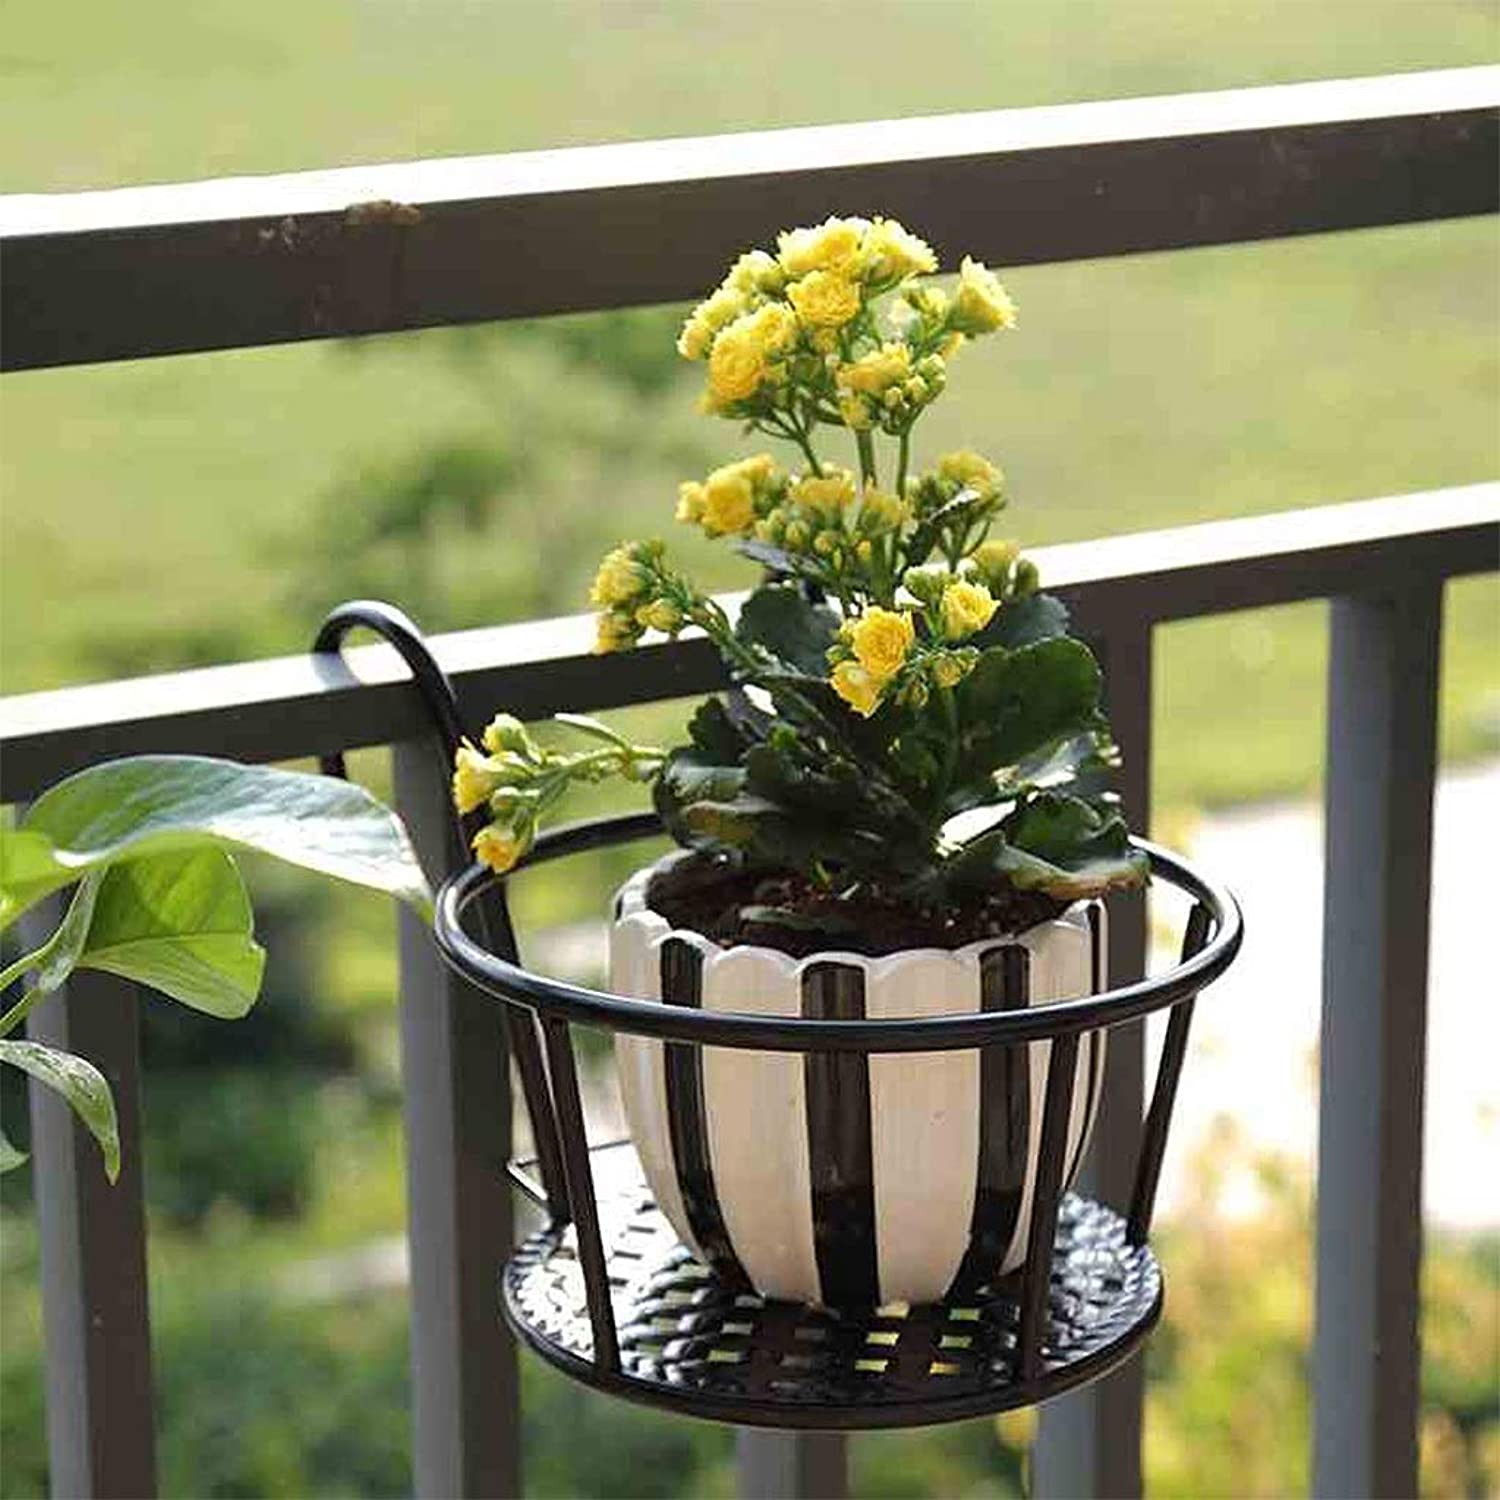 Balcony Flower Stand Black, Household Iron Art Hanging Flower Stand, Metal Patio Plant Stands (Size   5 Pack)